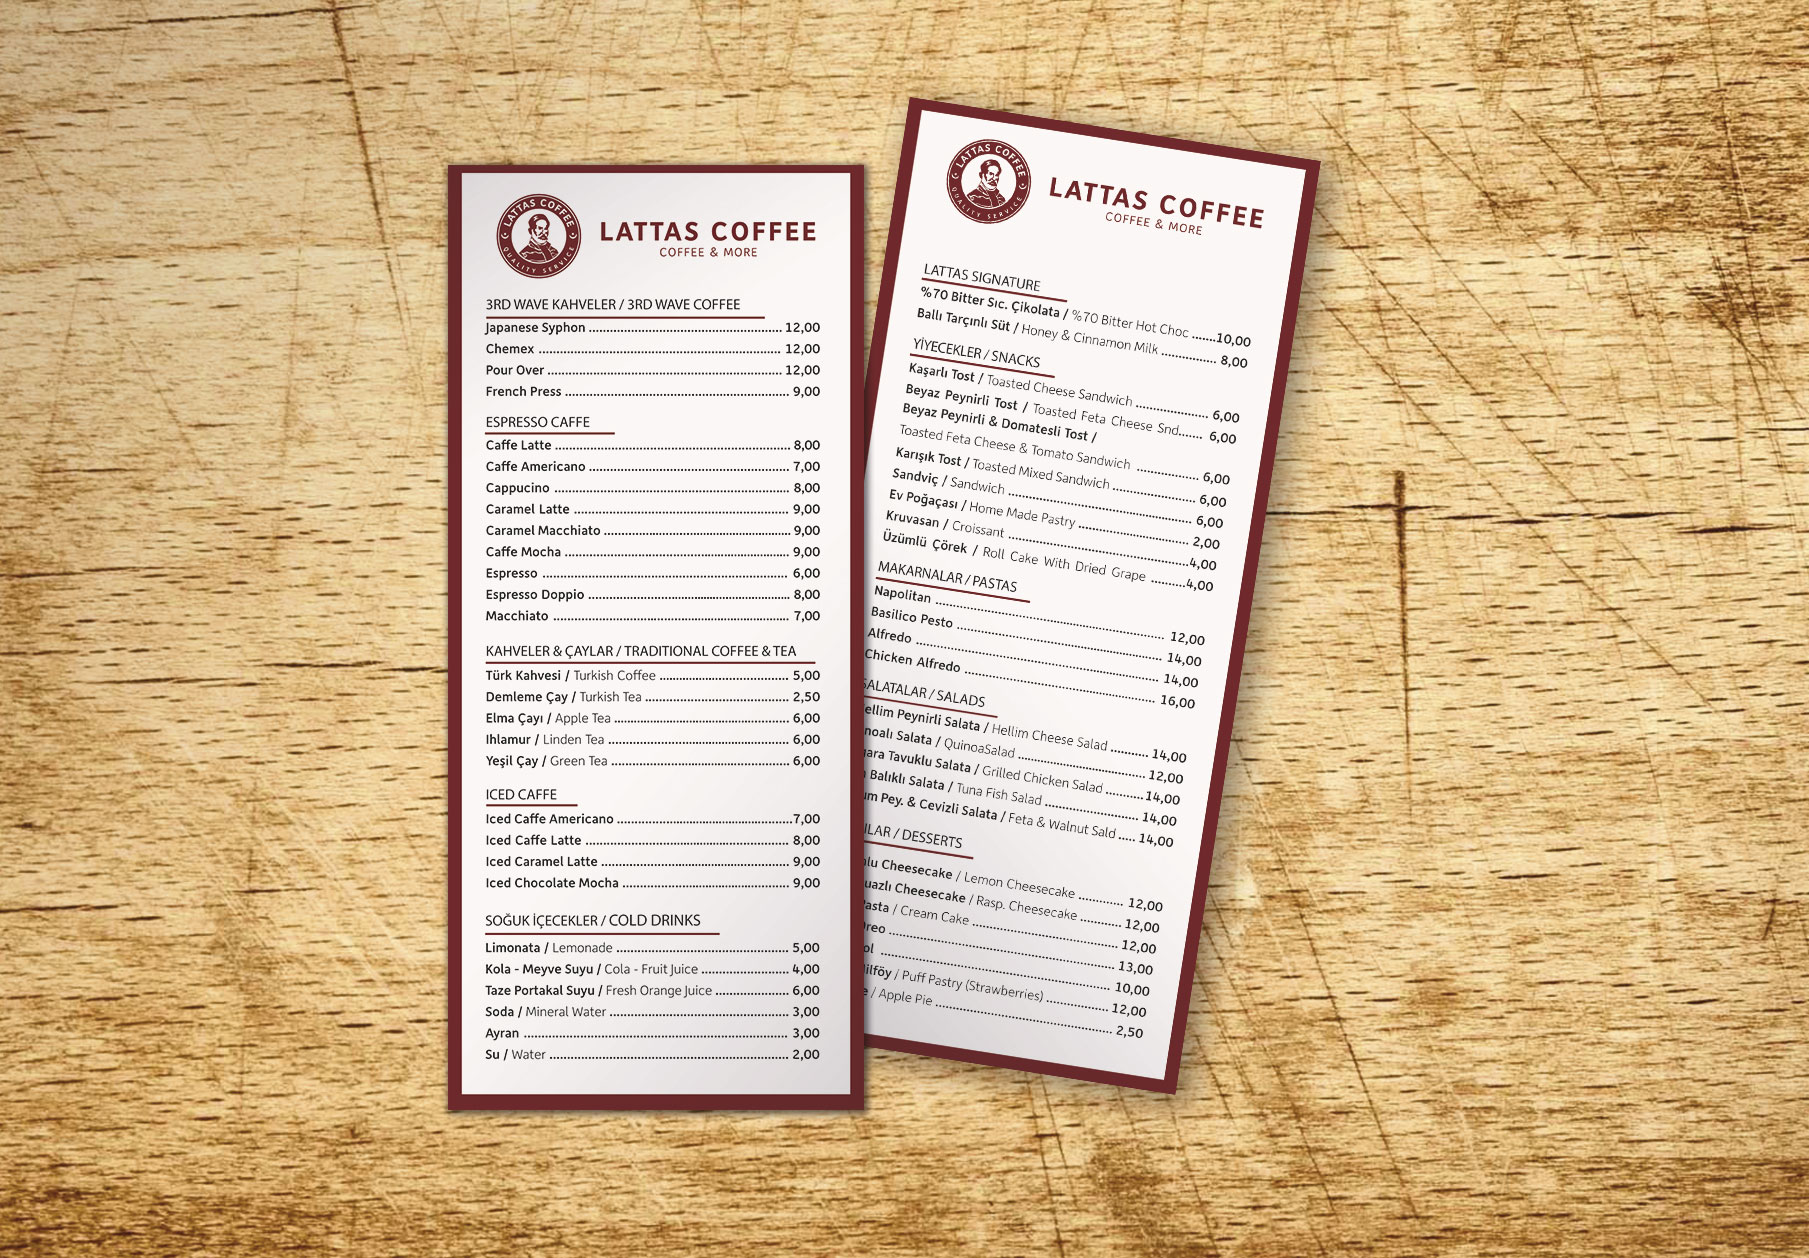 Nar_Turizm_17_lattas_coffee_menu_tasarimi